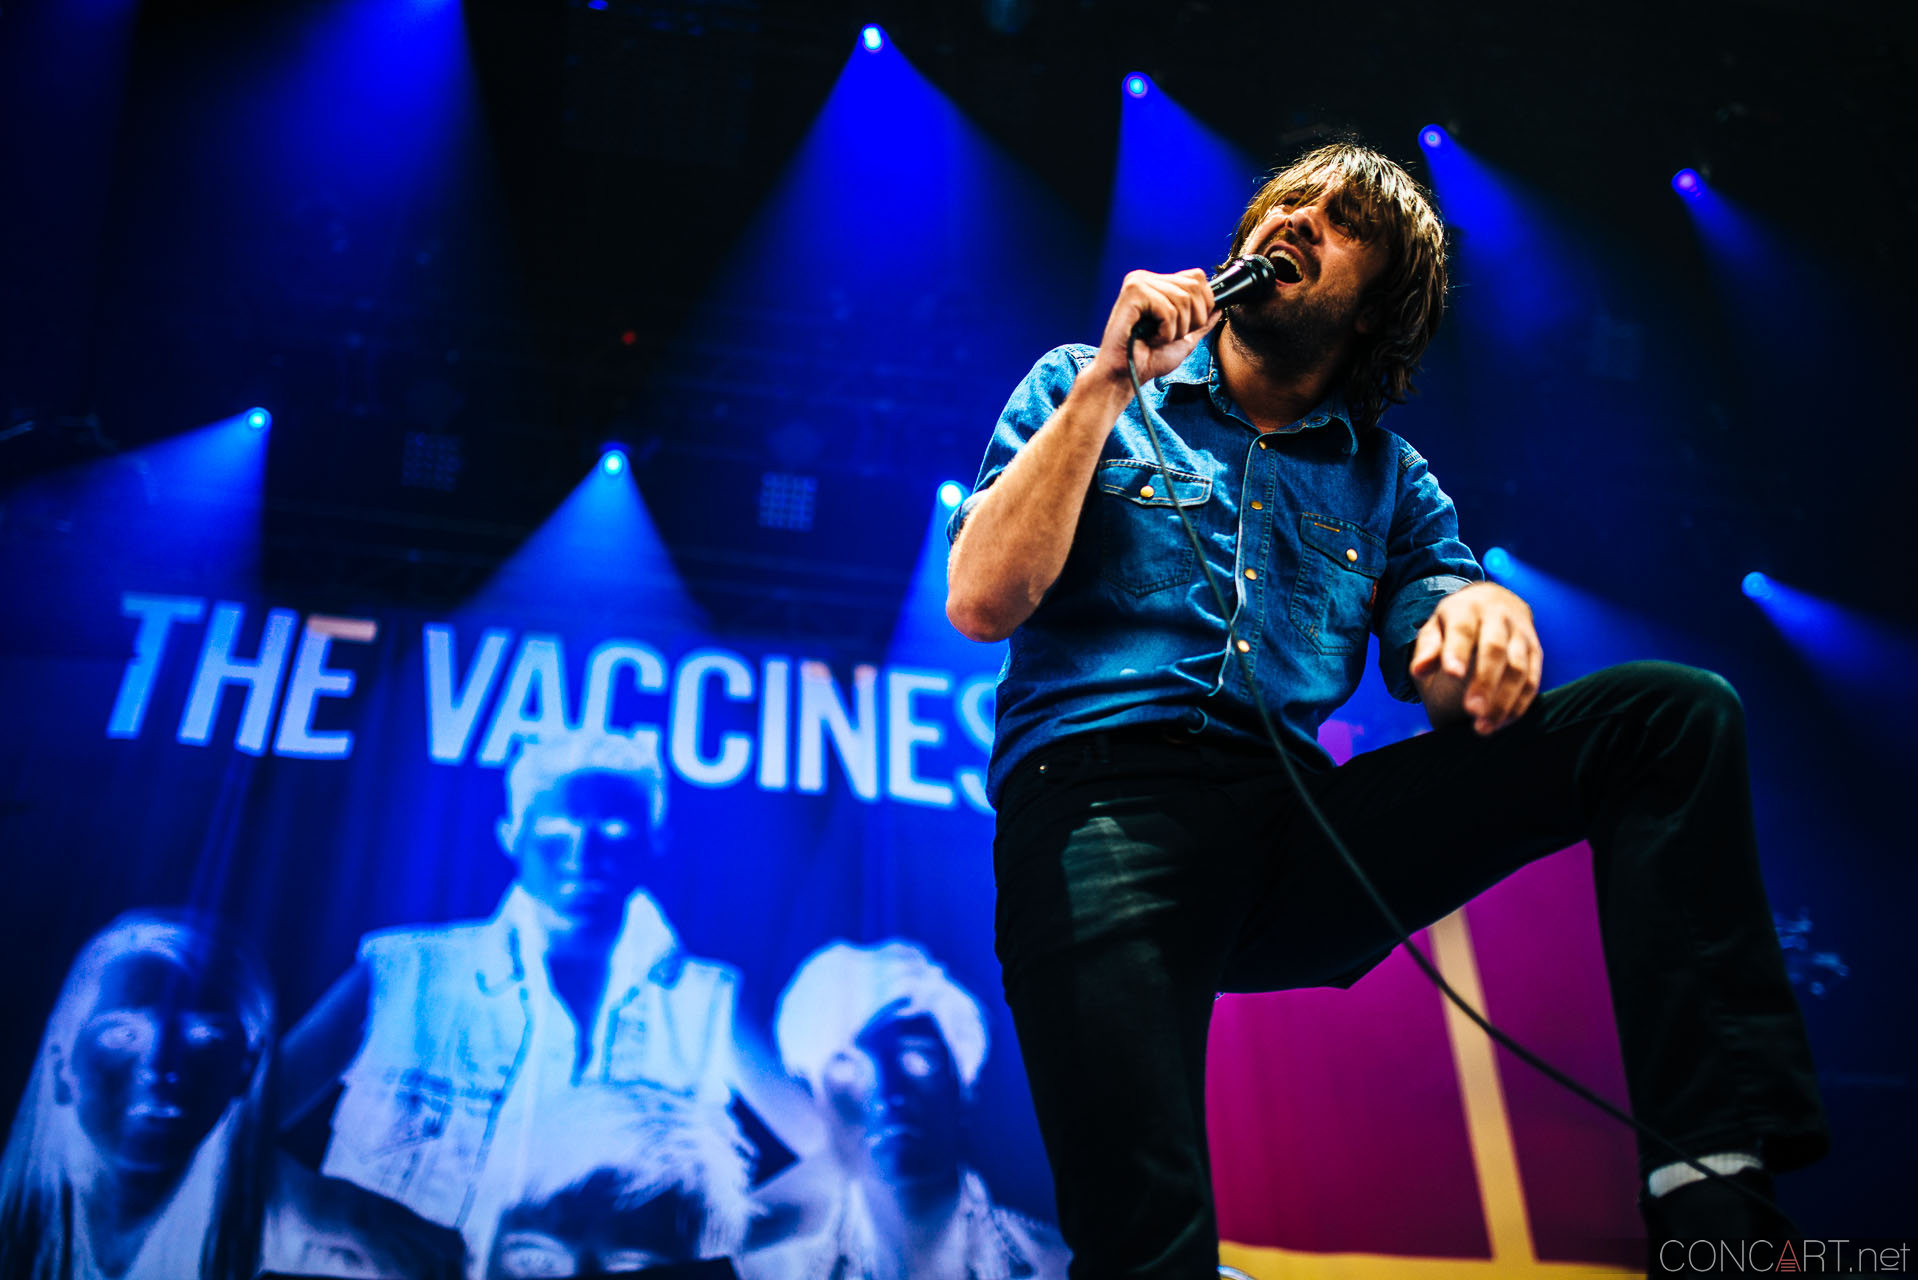 The Vaccines photo by Sean Molin 13